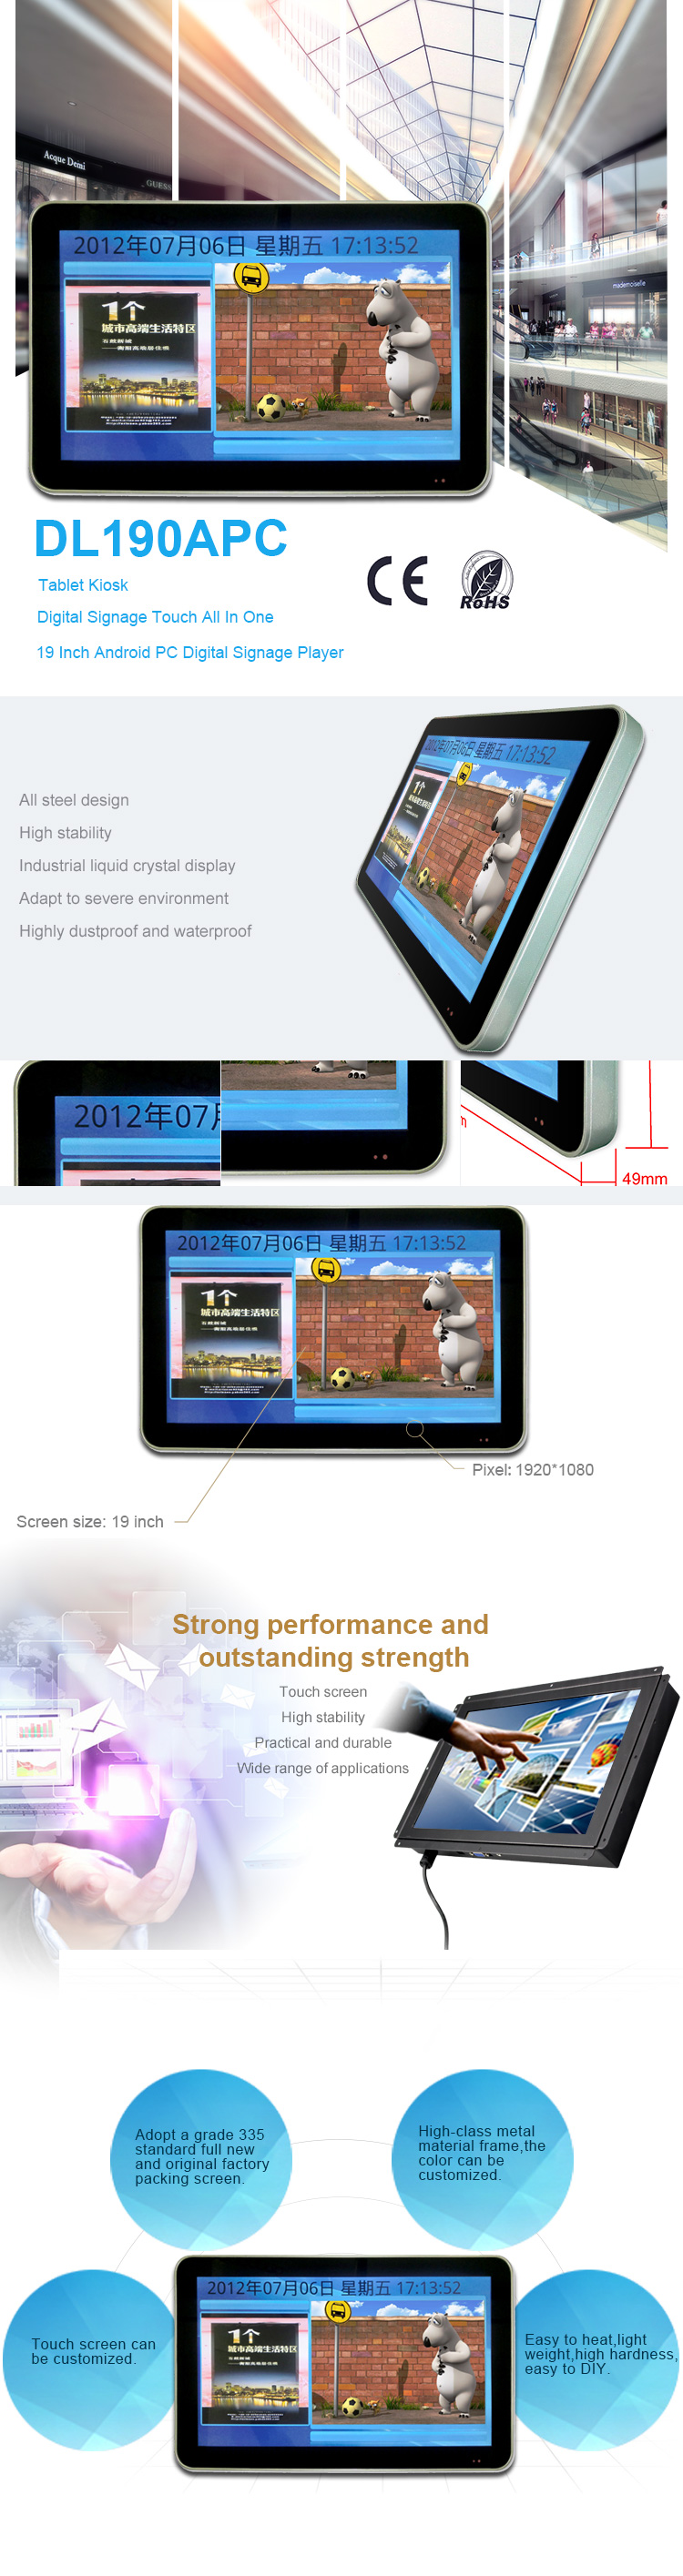 "HD 16:9 19 inch ""widescreen PC touch screen monitor"